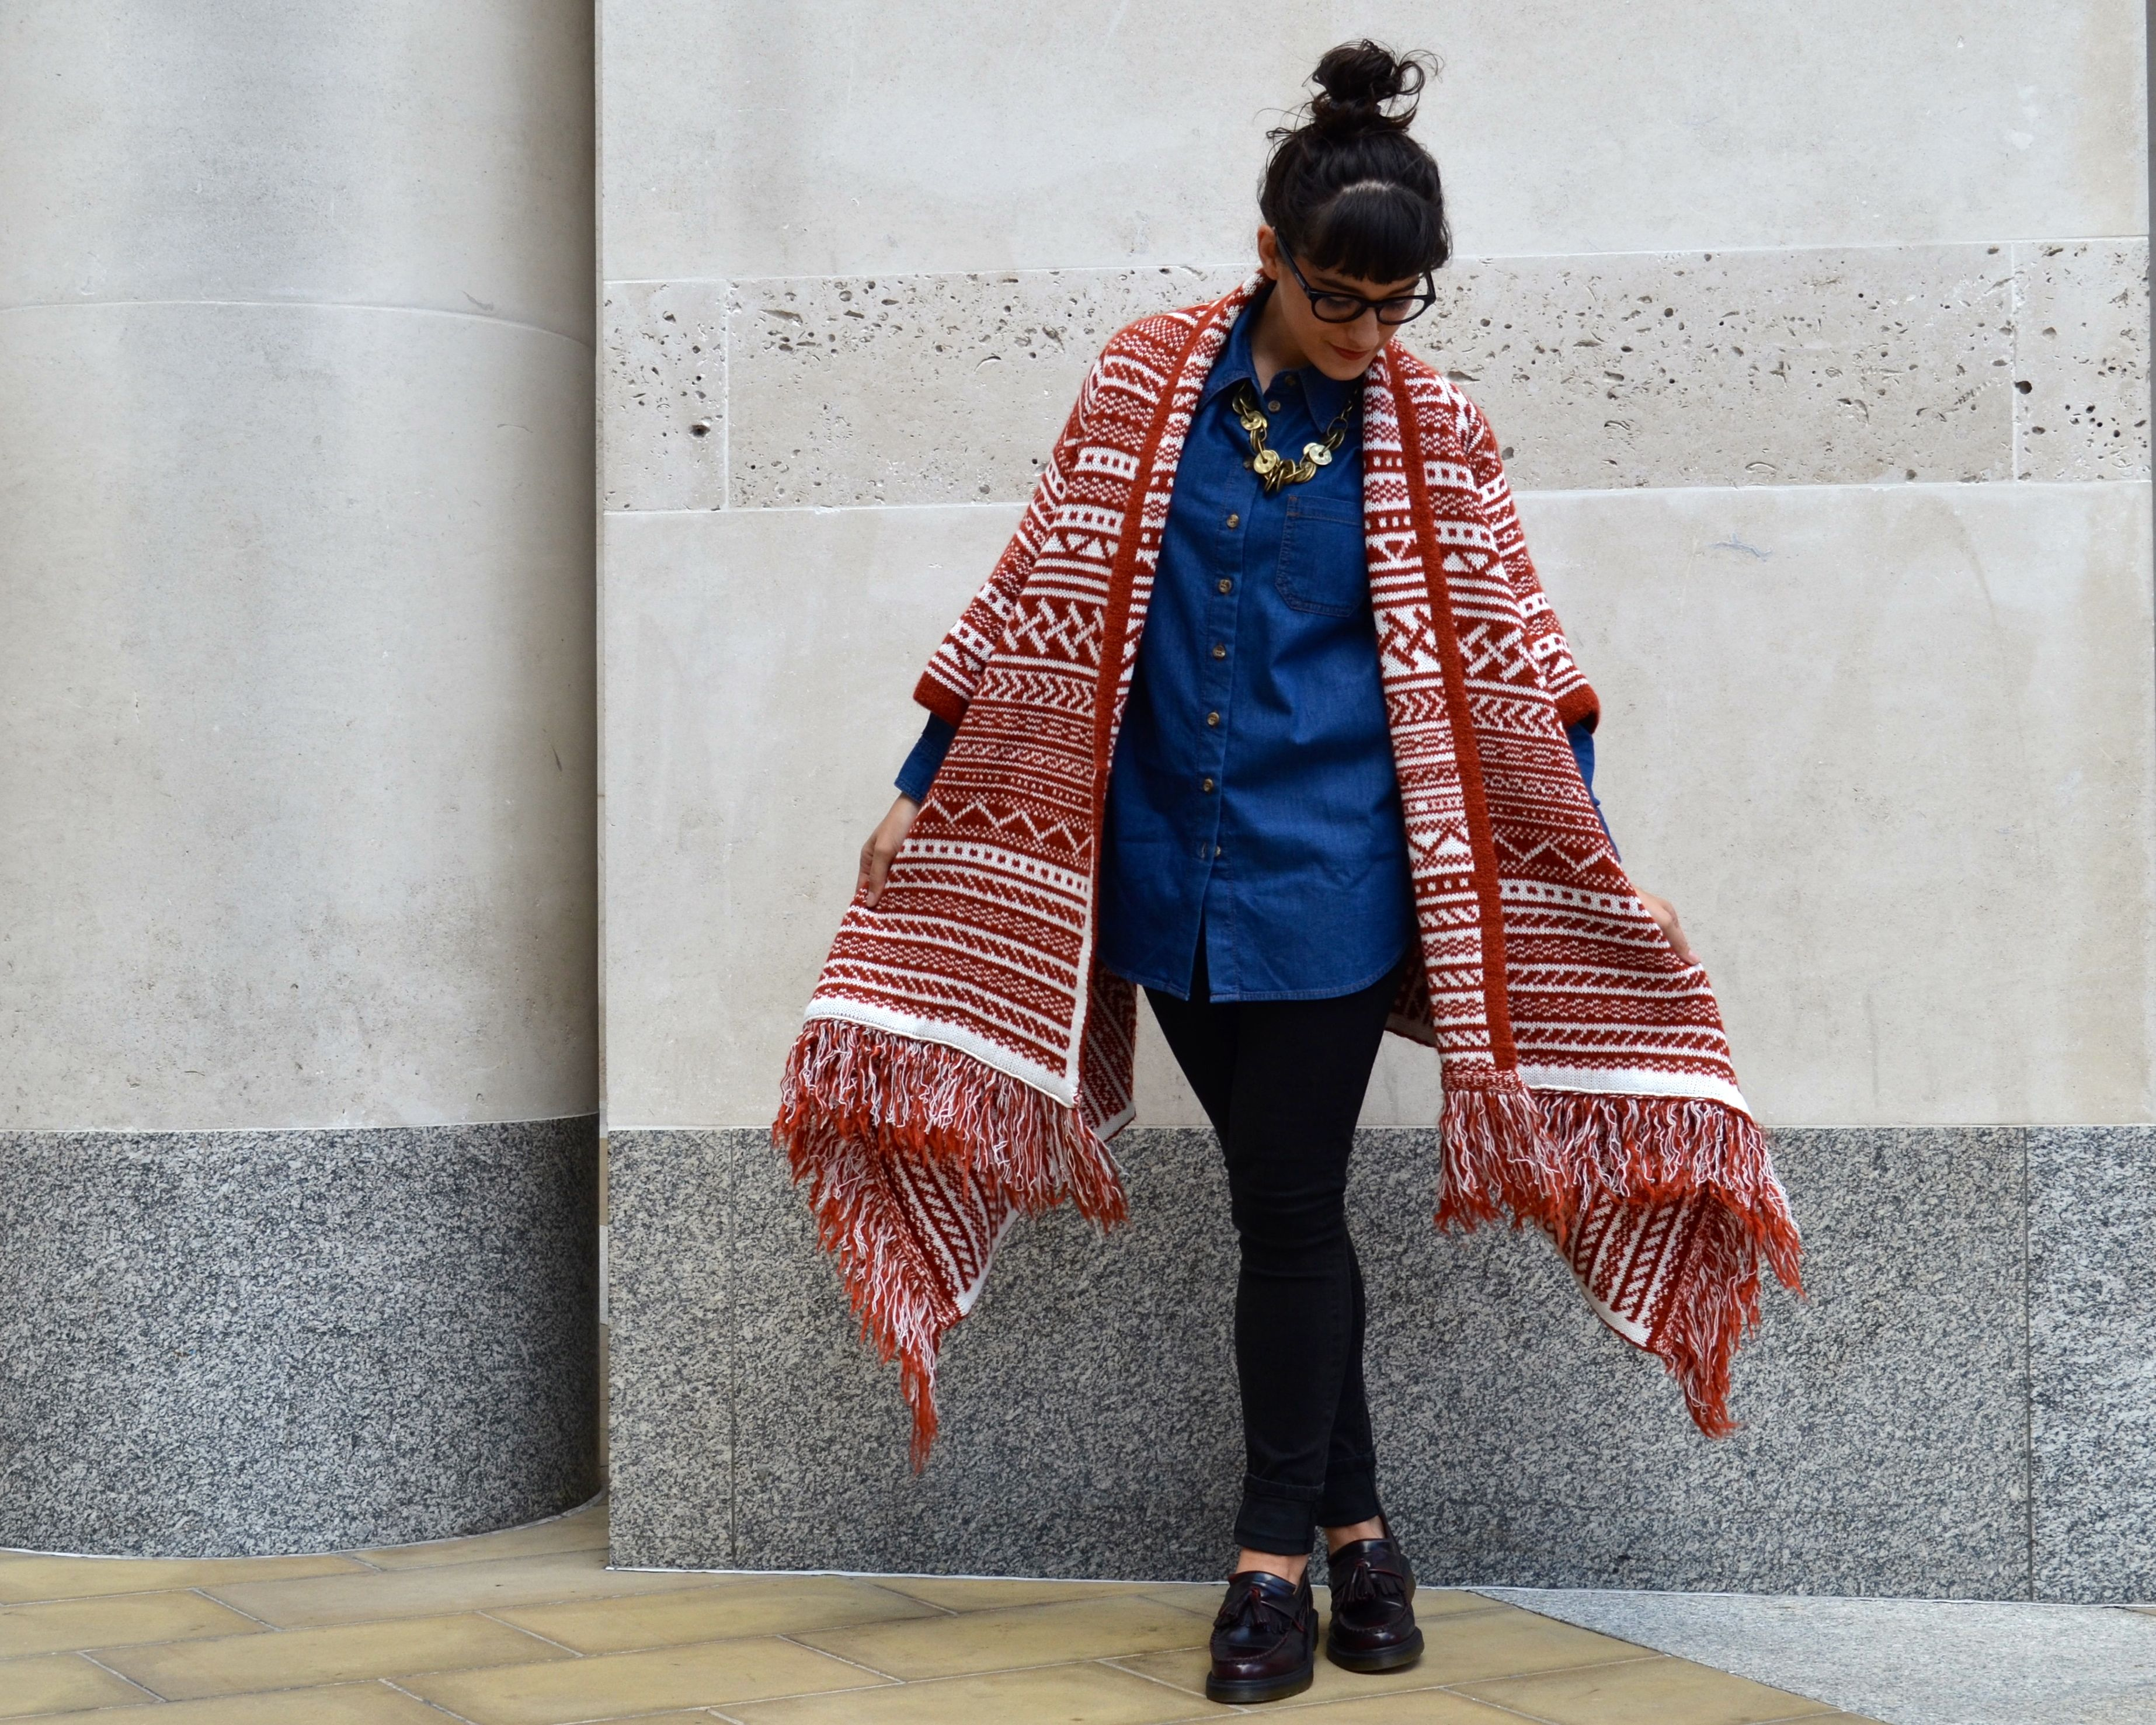 asos pattern cardigan in maxi drape shape and denim boyfriend shirt with dr martens loafers pictures for an office